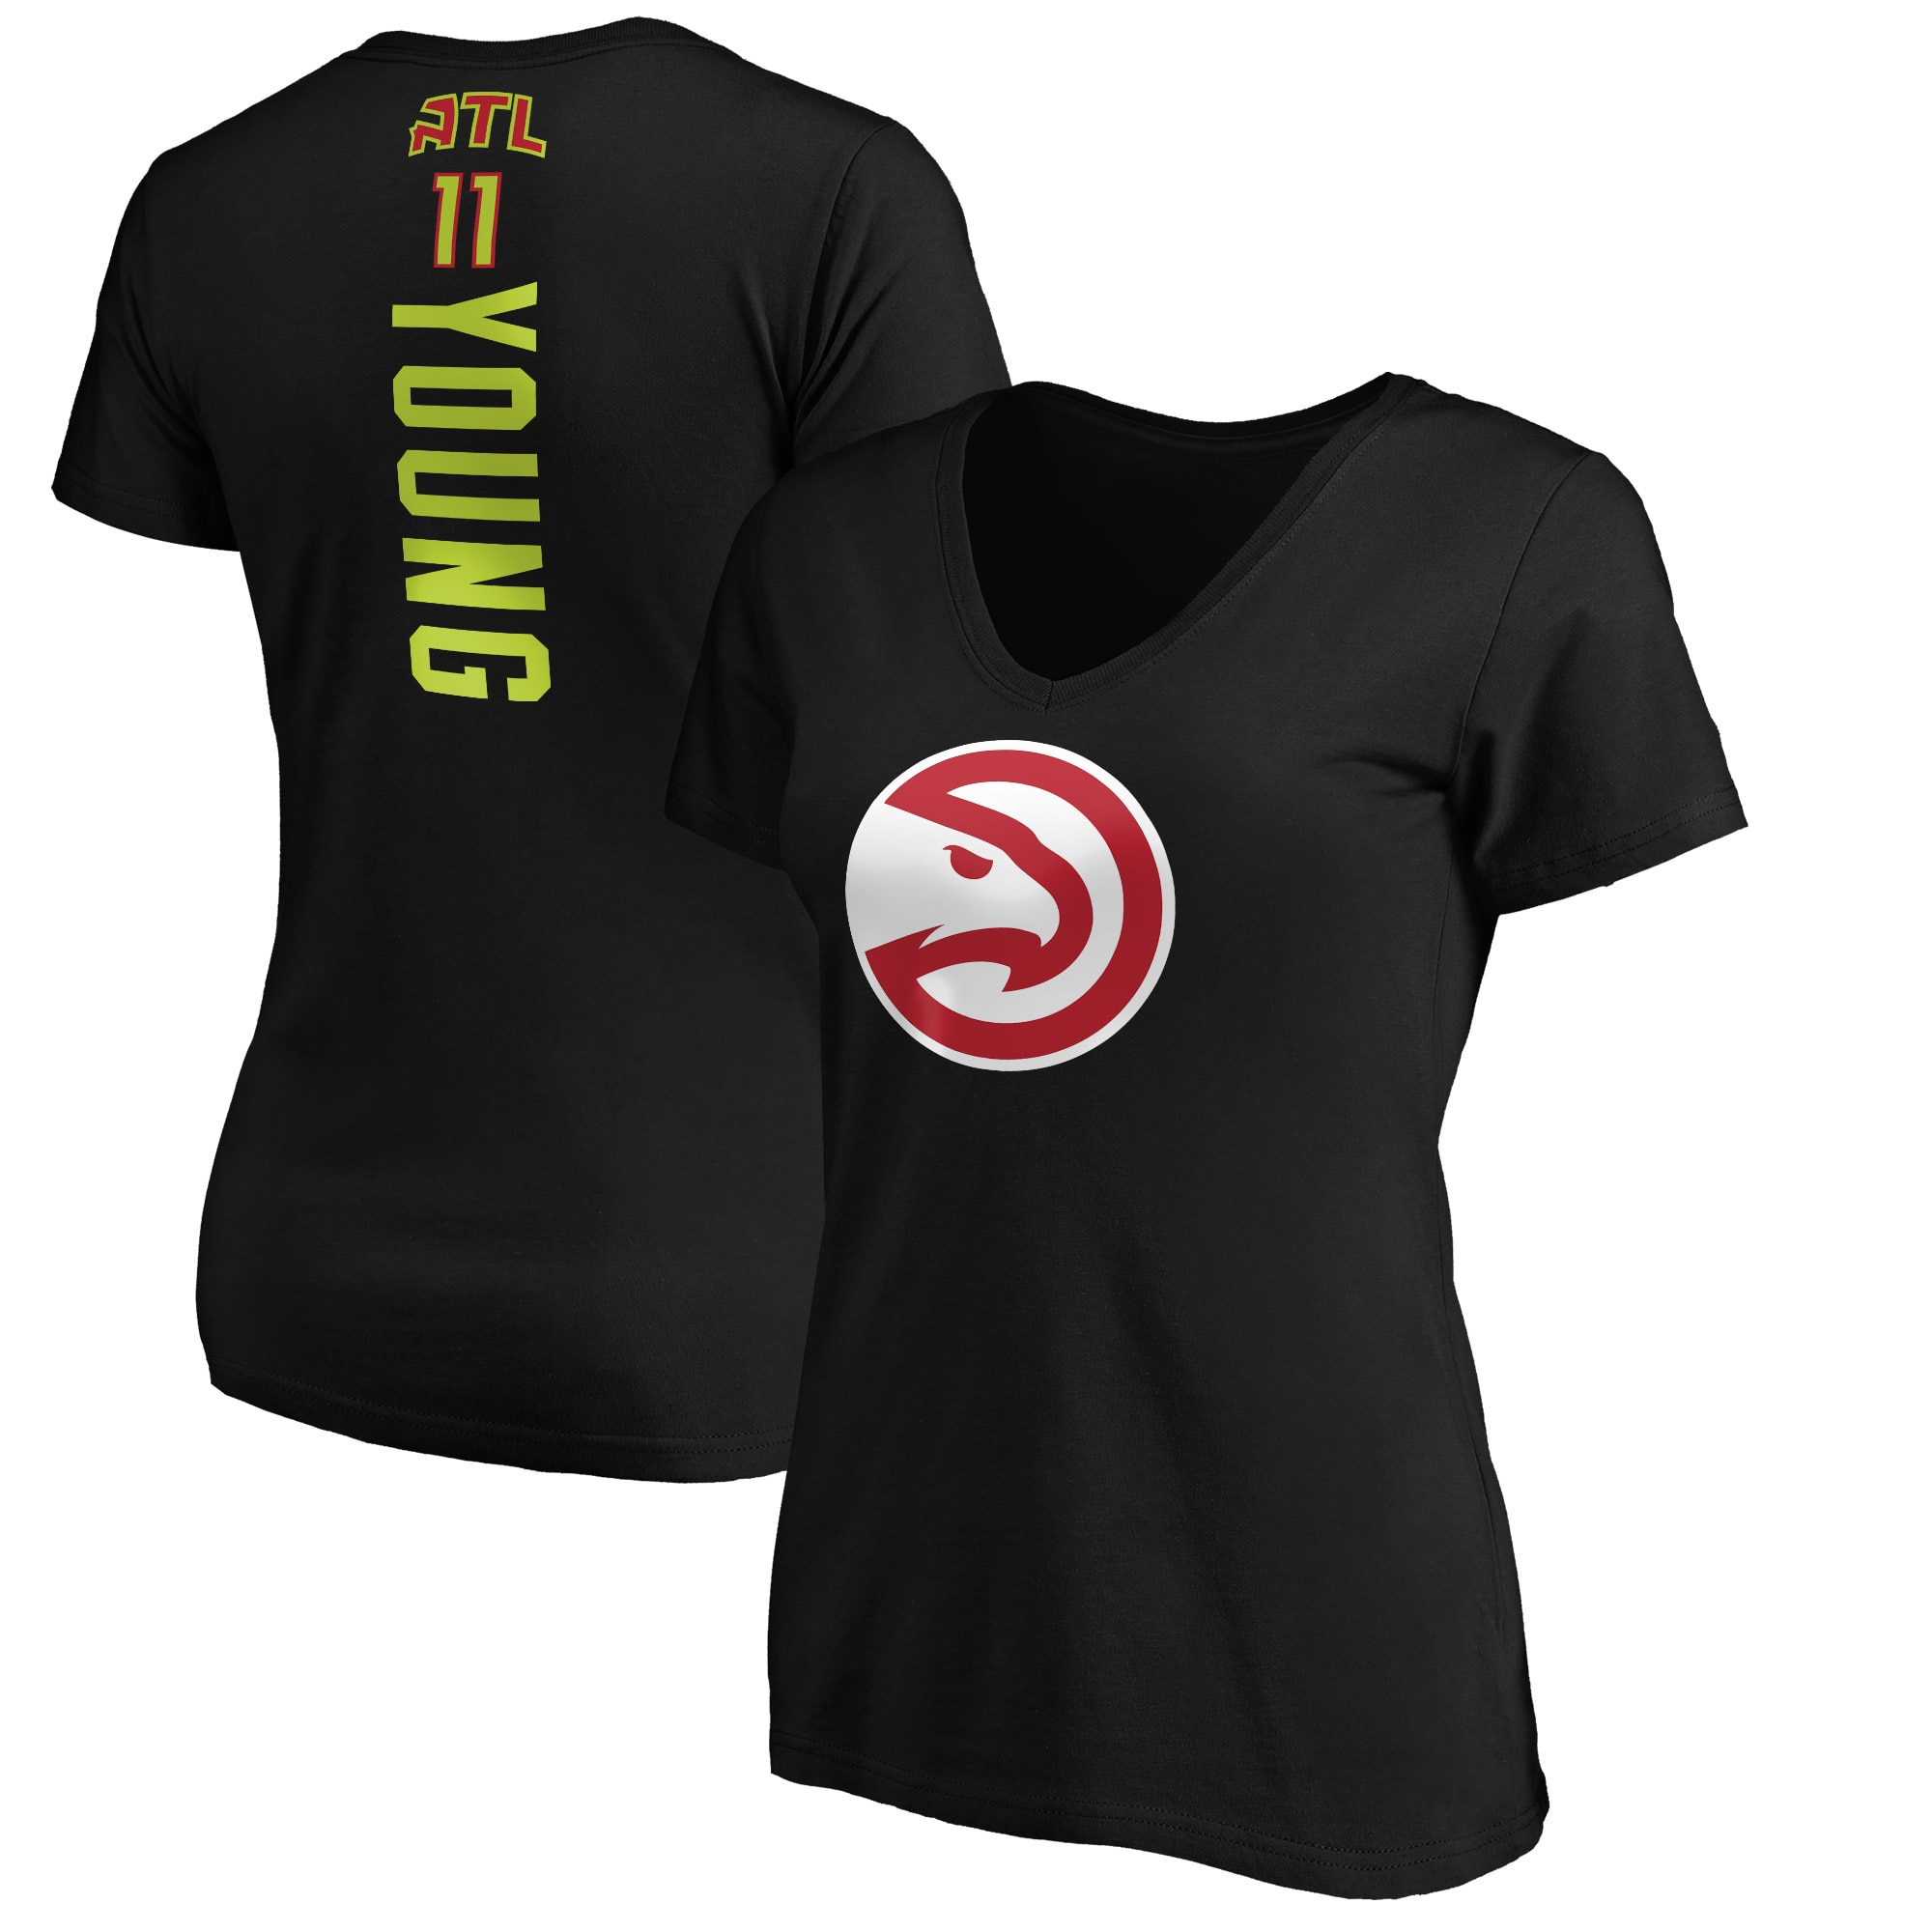 Trae Young Atlanta Hawks Fanatics Branded Women's Playmaker Name & Number V-Neck T-Shirt - Black